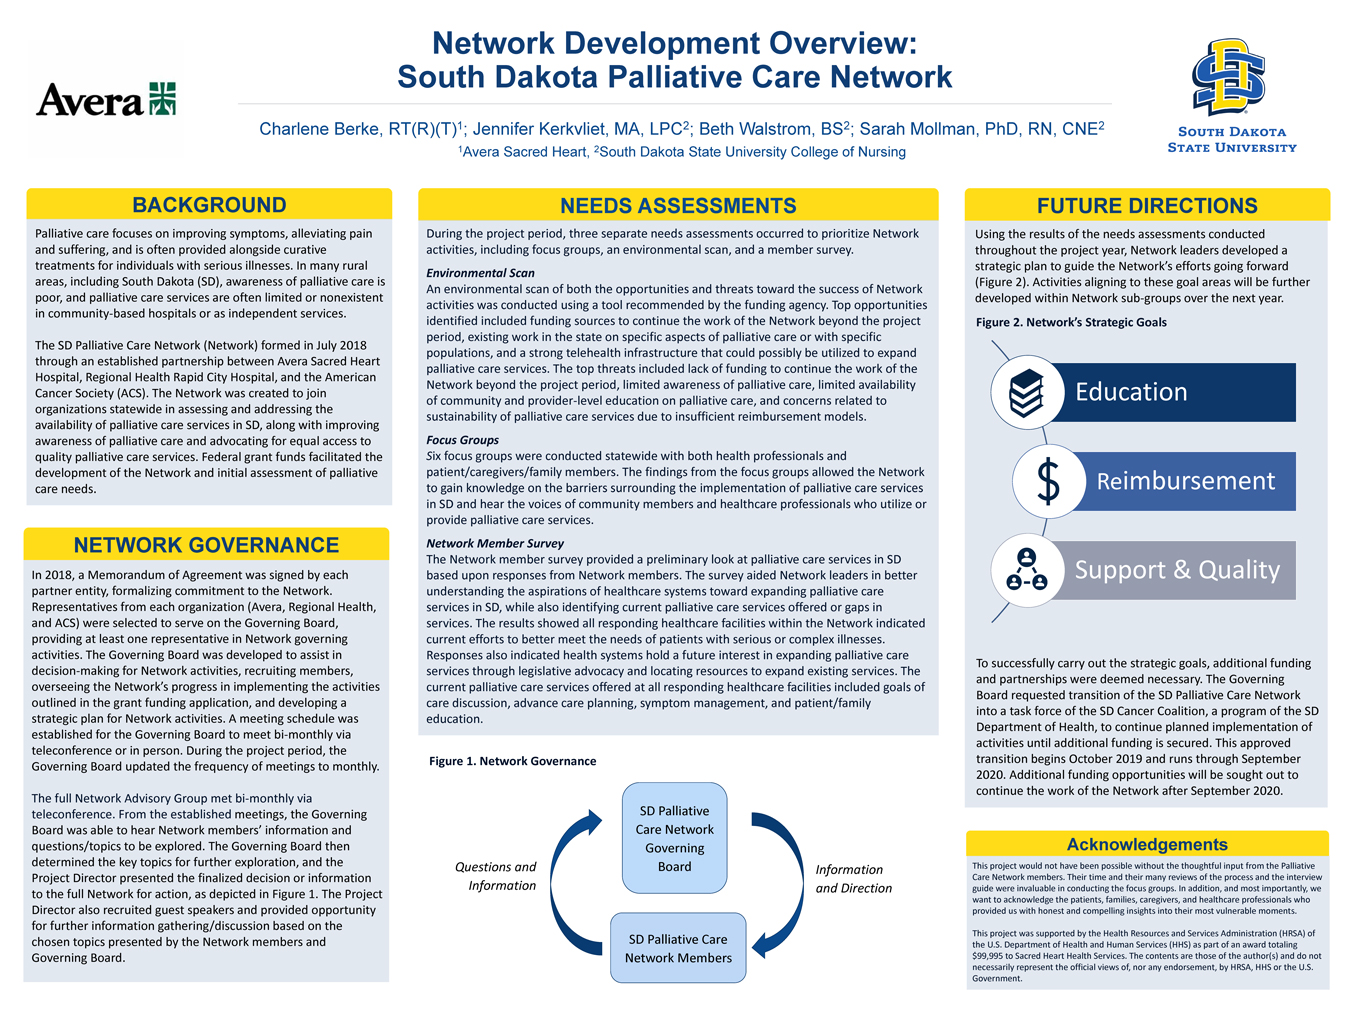 Network Development Overview: South Dakota Palliative Care Network